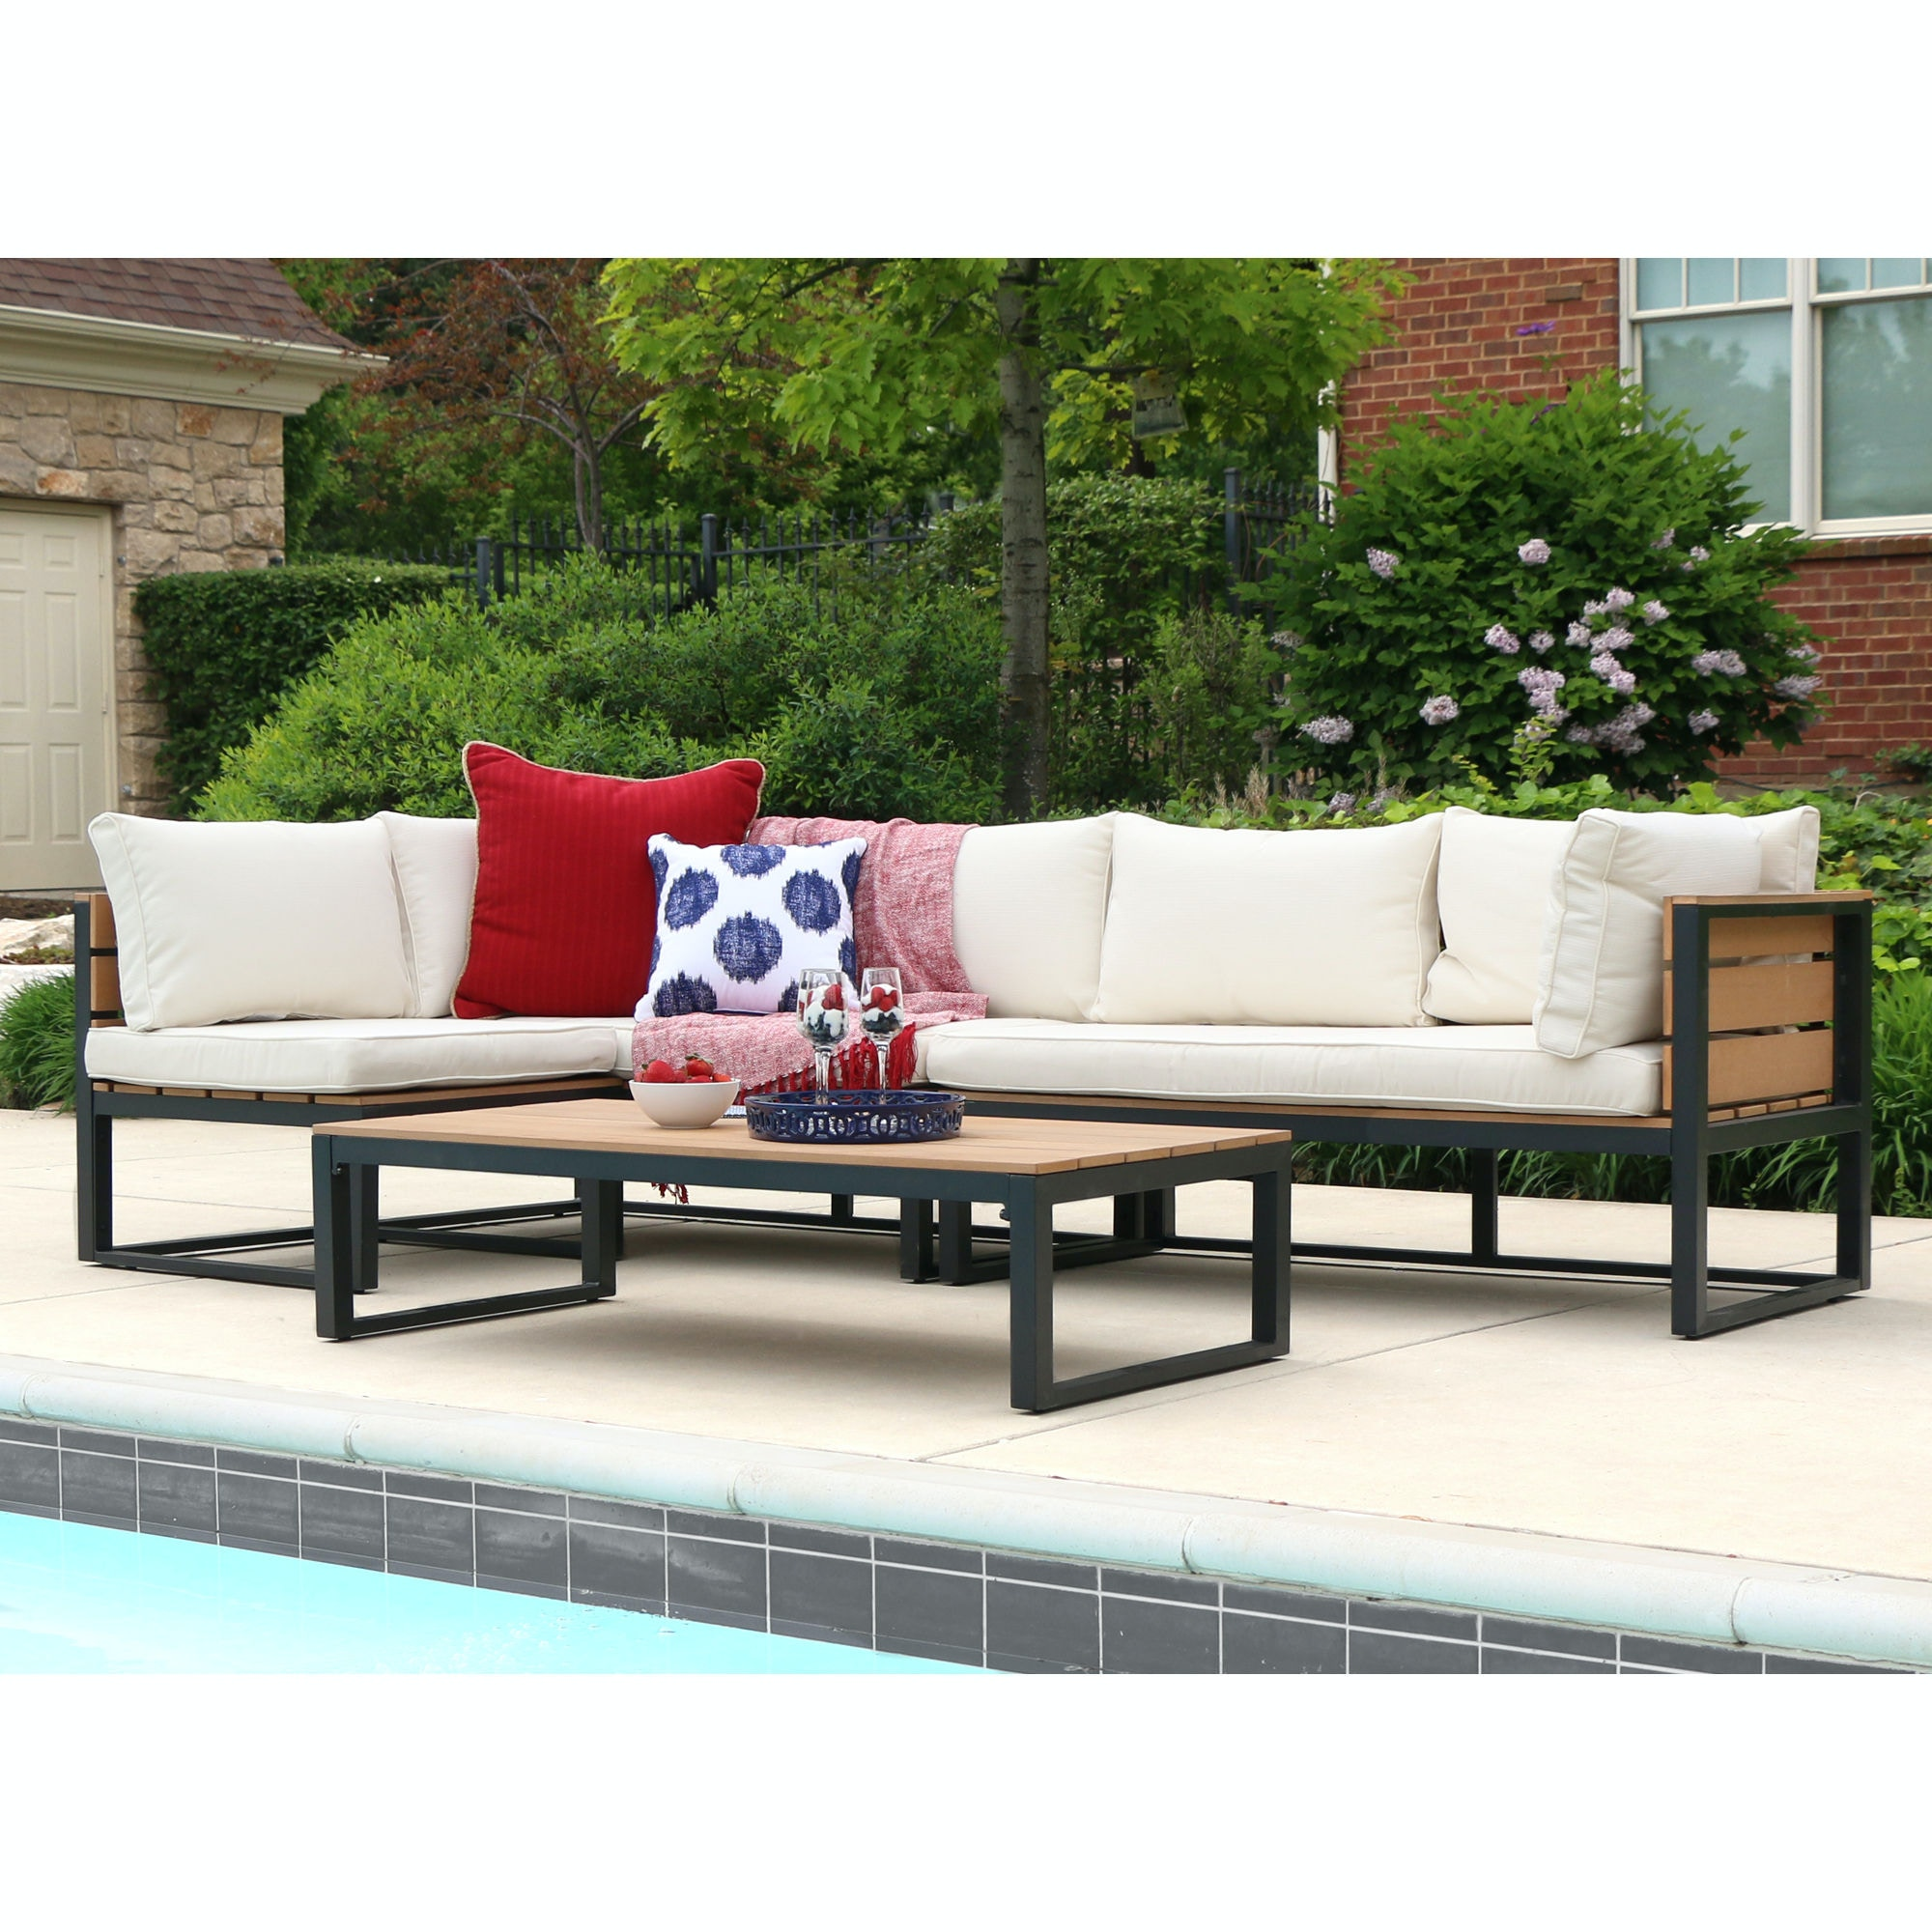 Ft Myers 4-Piece All-Weather Patio Conversation Set - Natural WEDOAW4CSNBL & 4-Piece All-Weather Patio Conversation Set - Natural WEDOAW4CSNBL